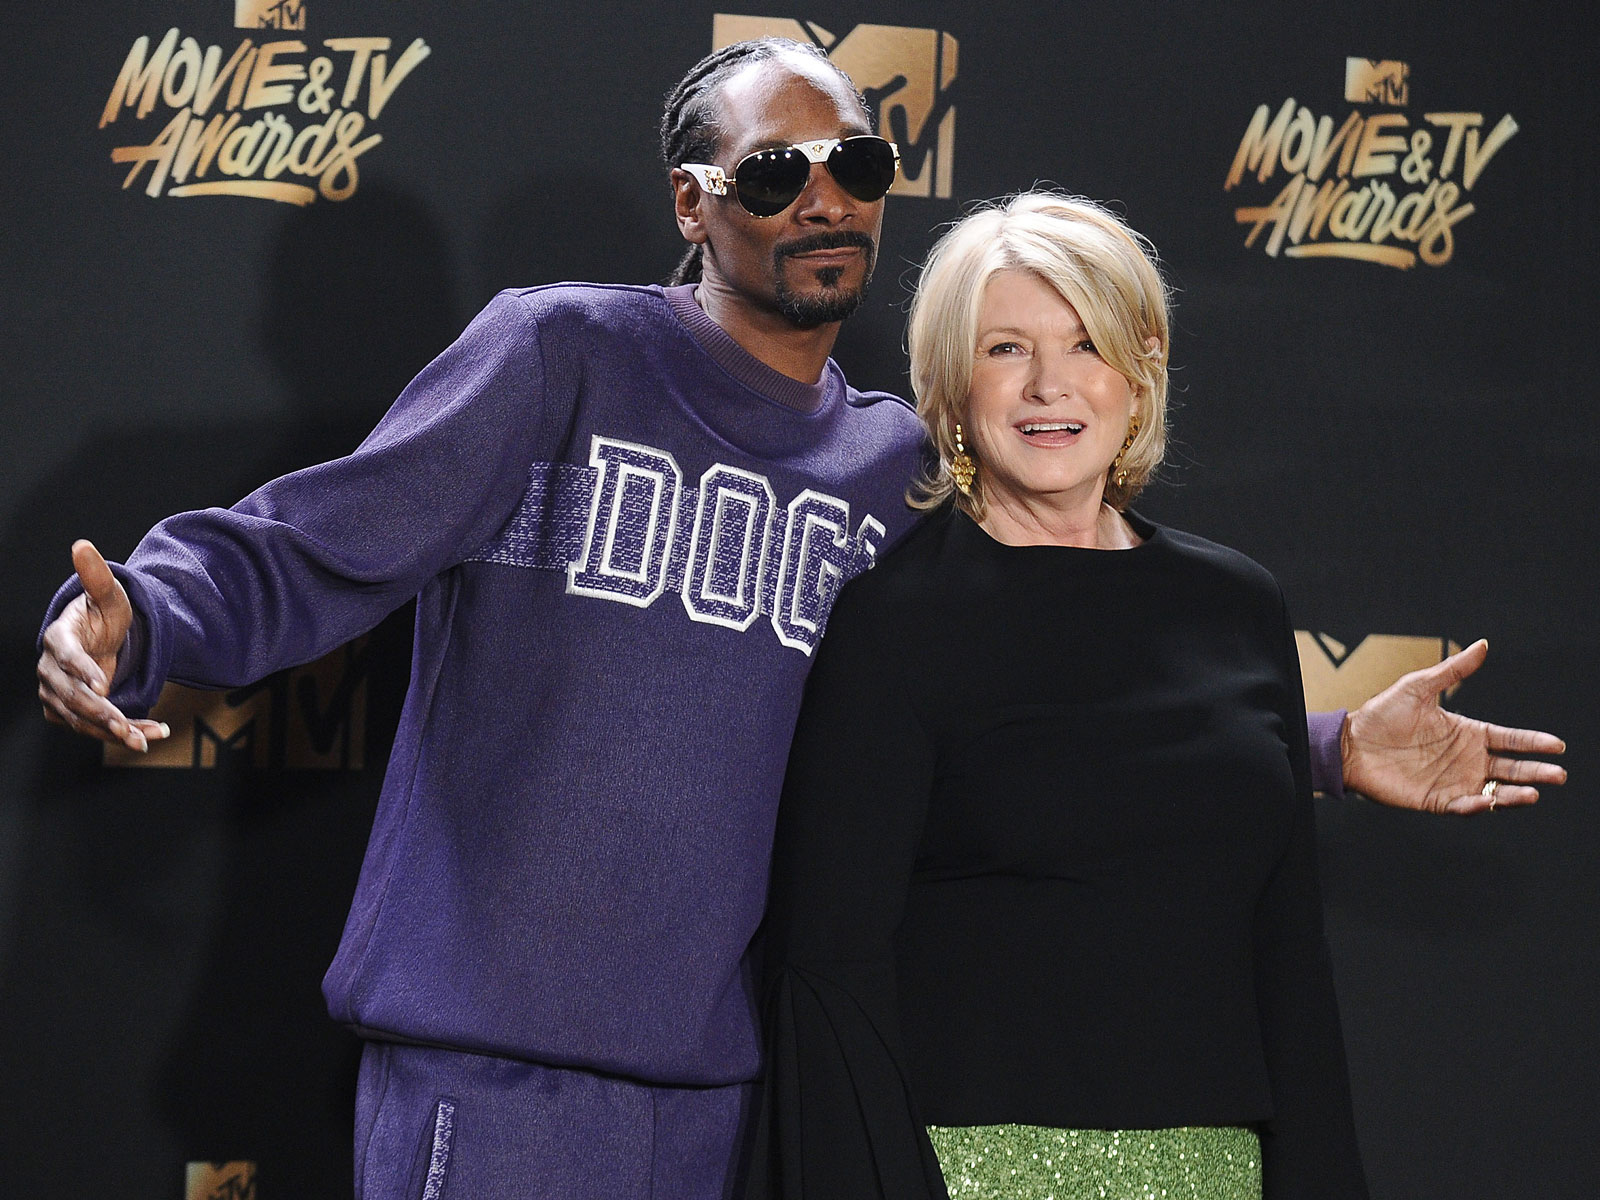 Martha Stewart's Auto-Tuned Sandwich Song Is the Fire Hit of the Summer